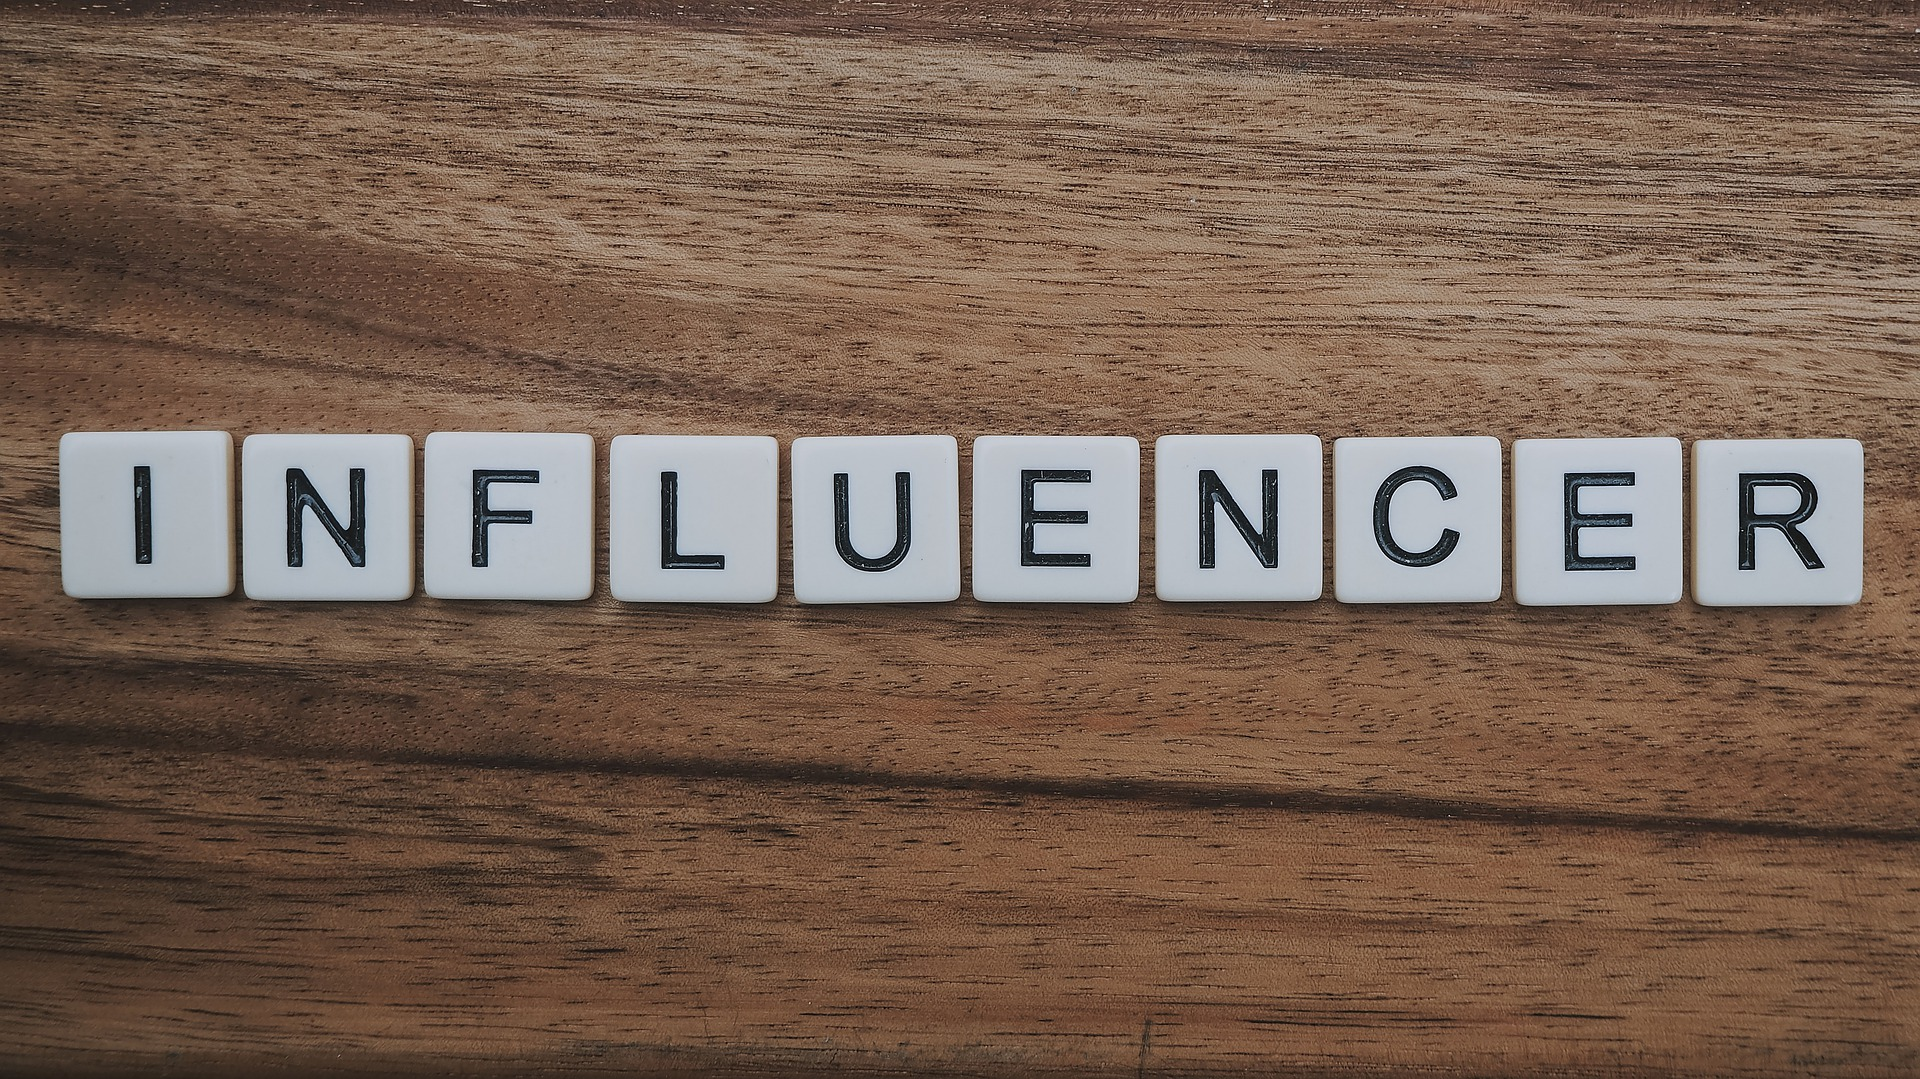 Email Marketing and Influencers